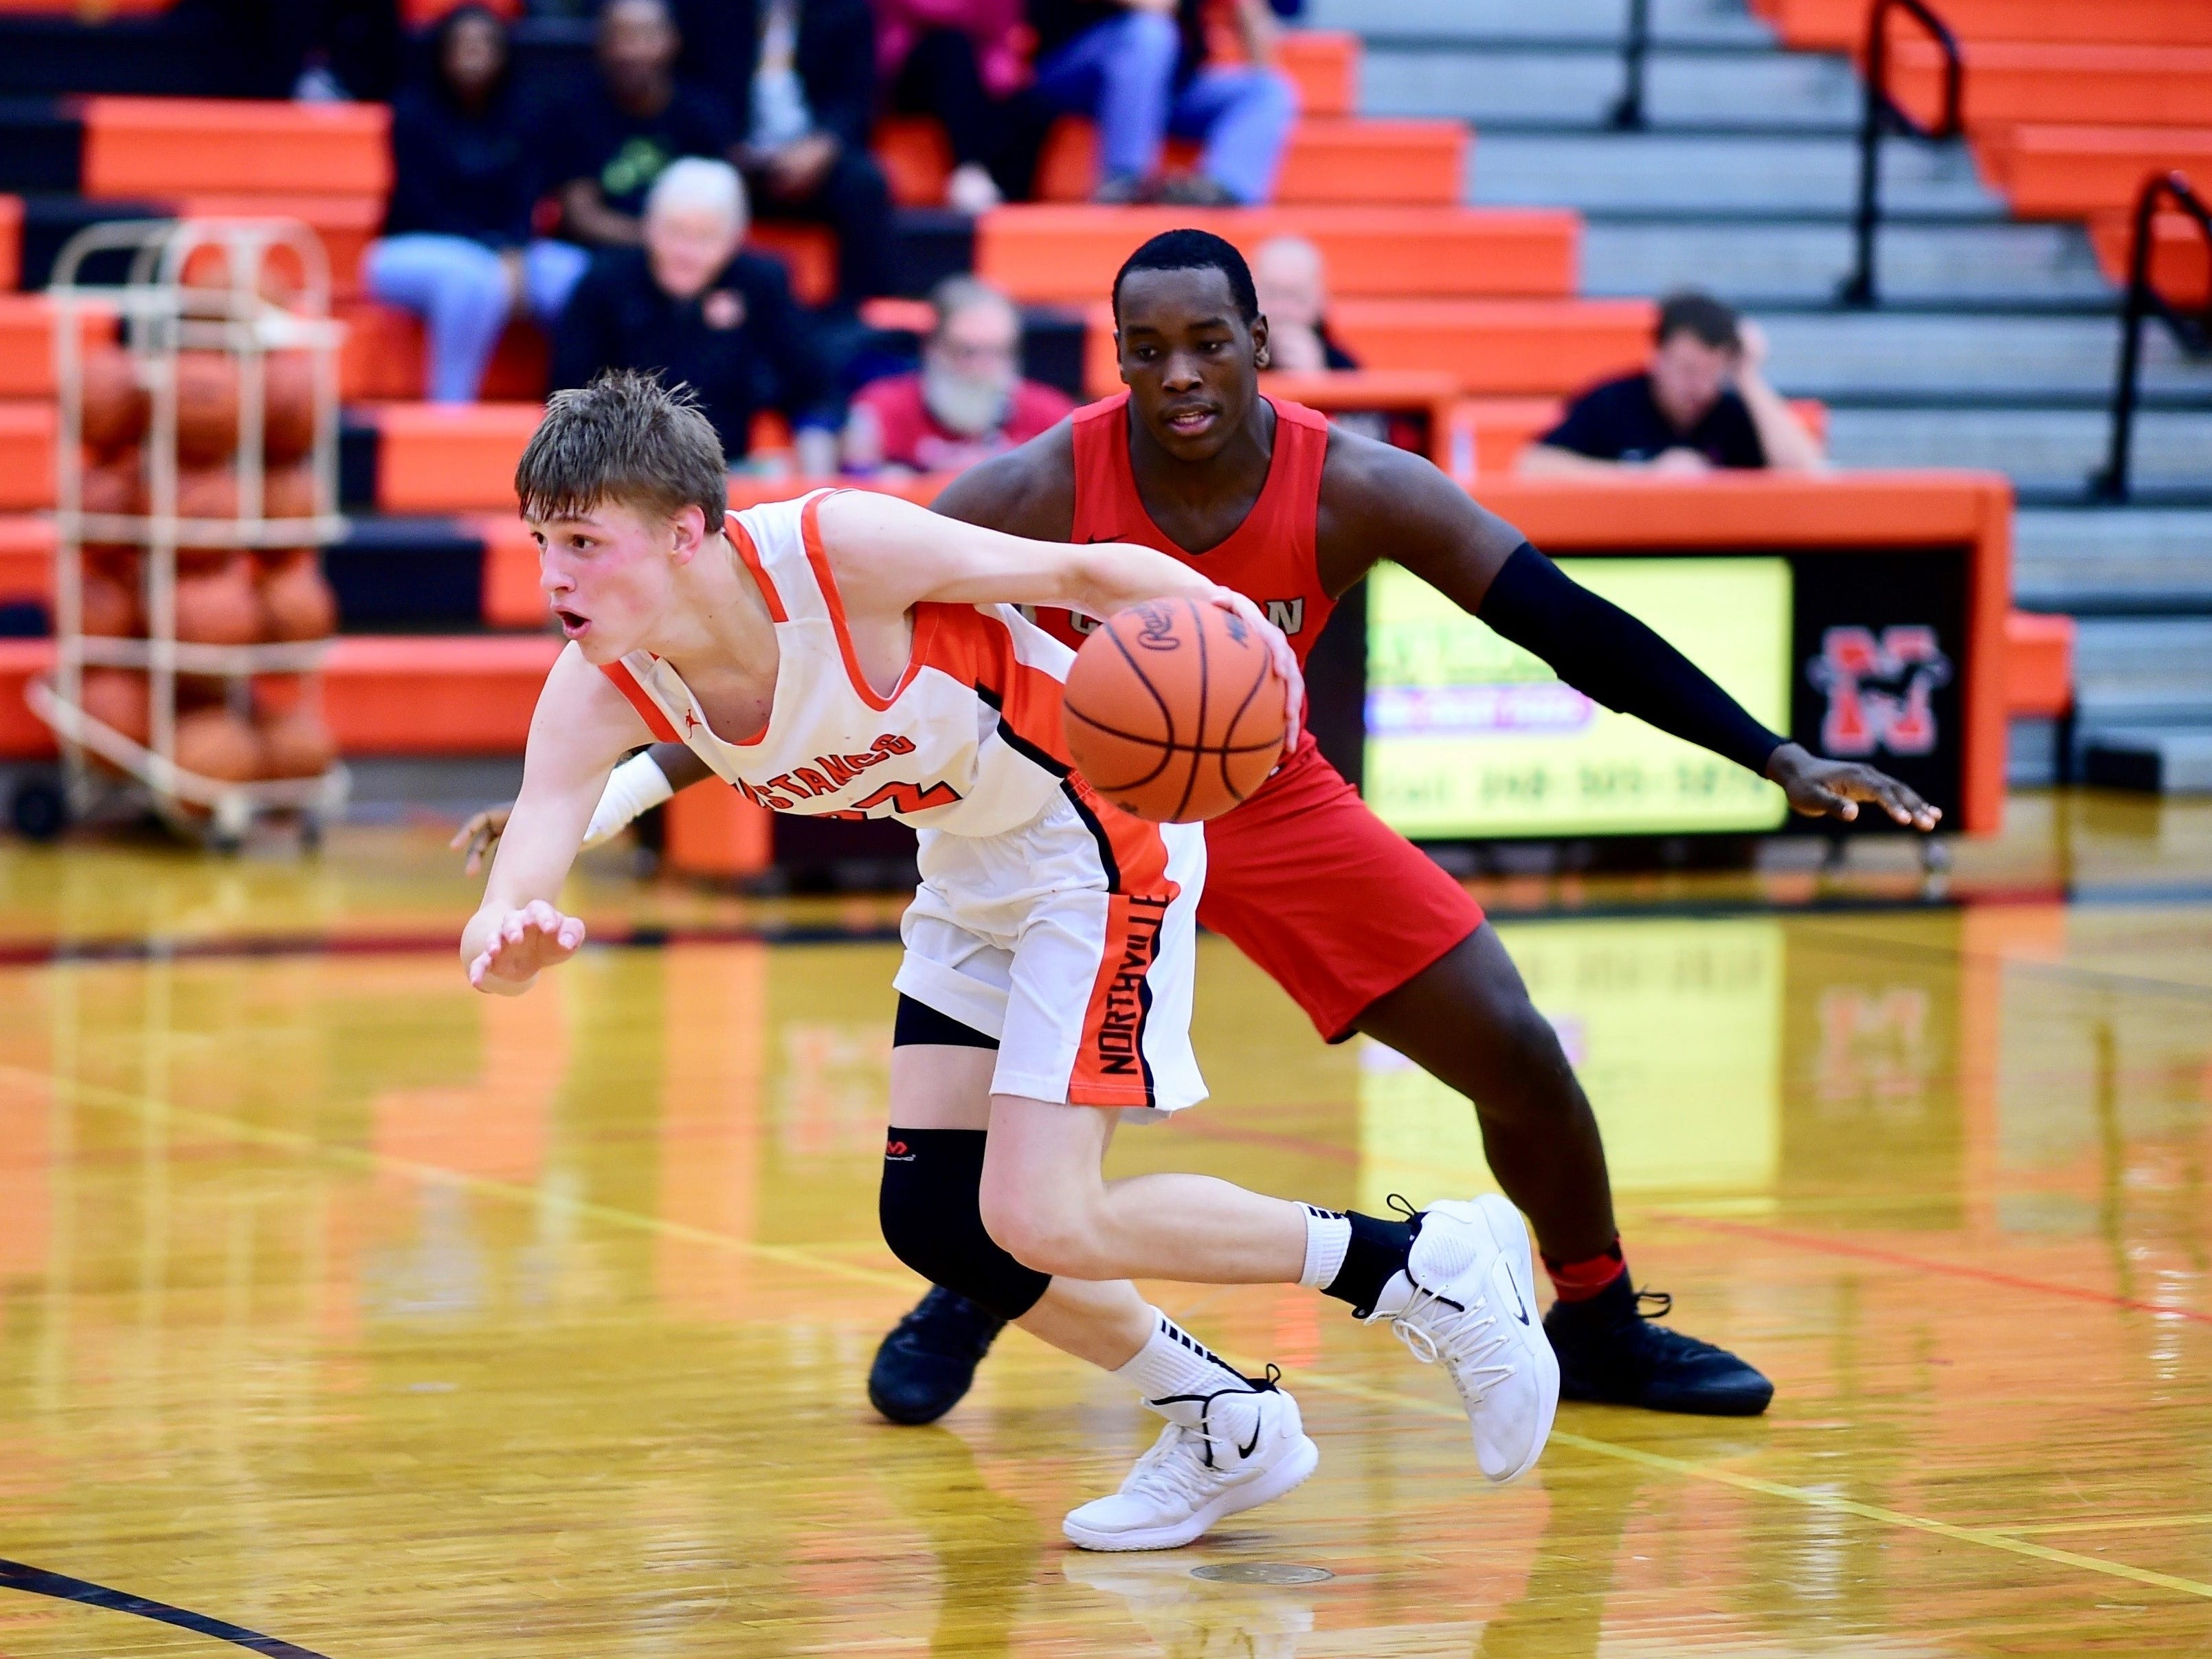 Northville's Ryan Pumper (22) tries to elude the tough defense of Canton's Darius Robinson during Thursday's game.